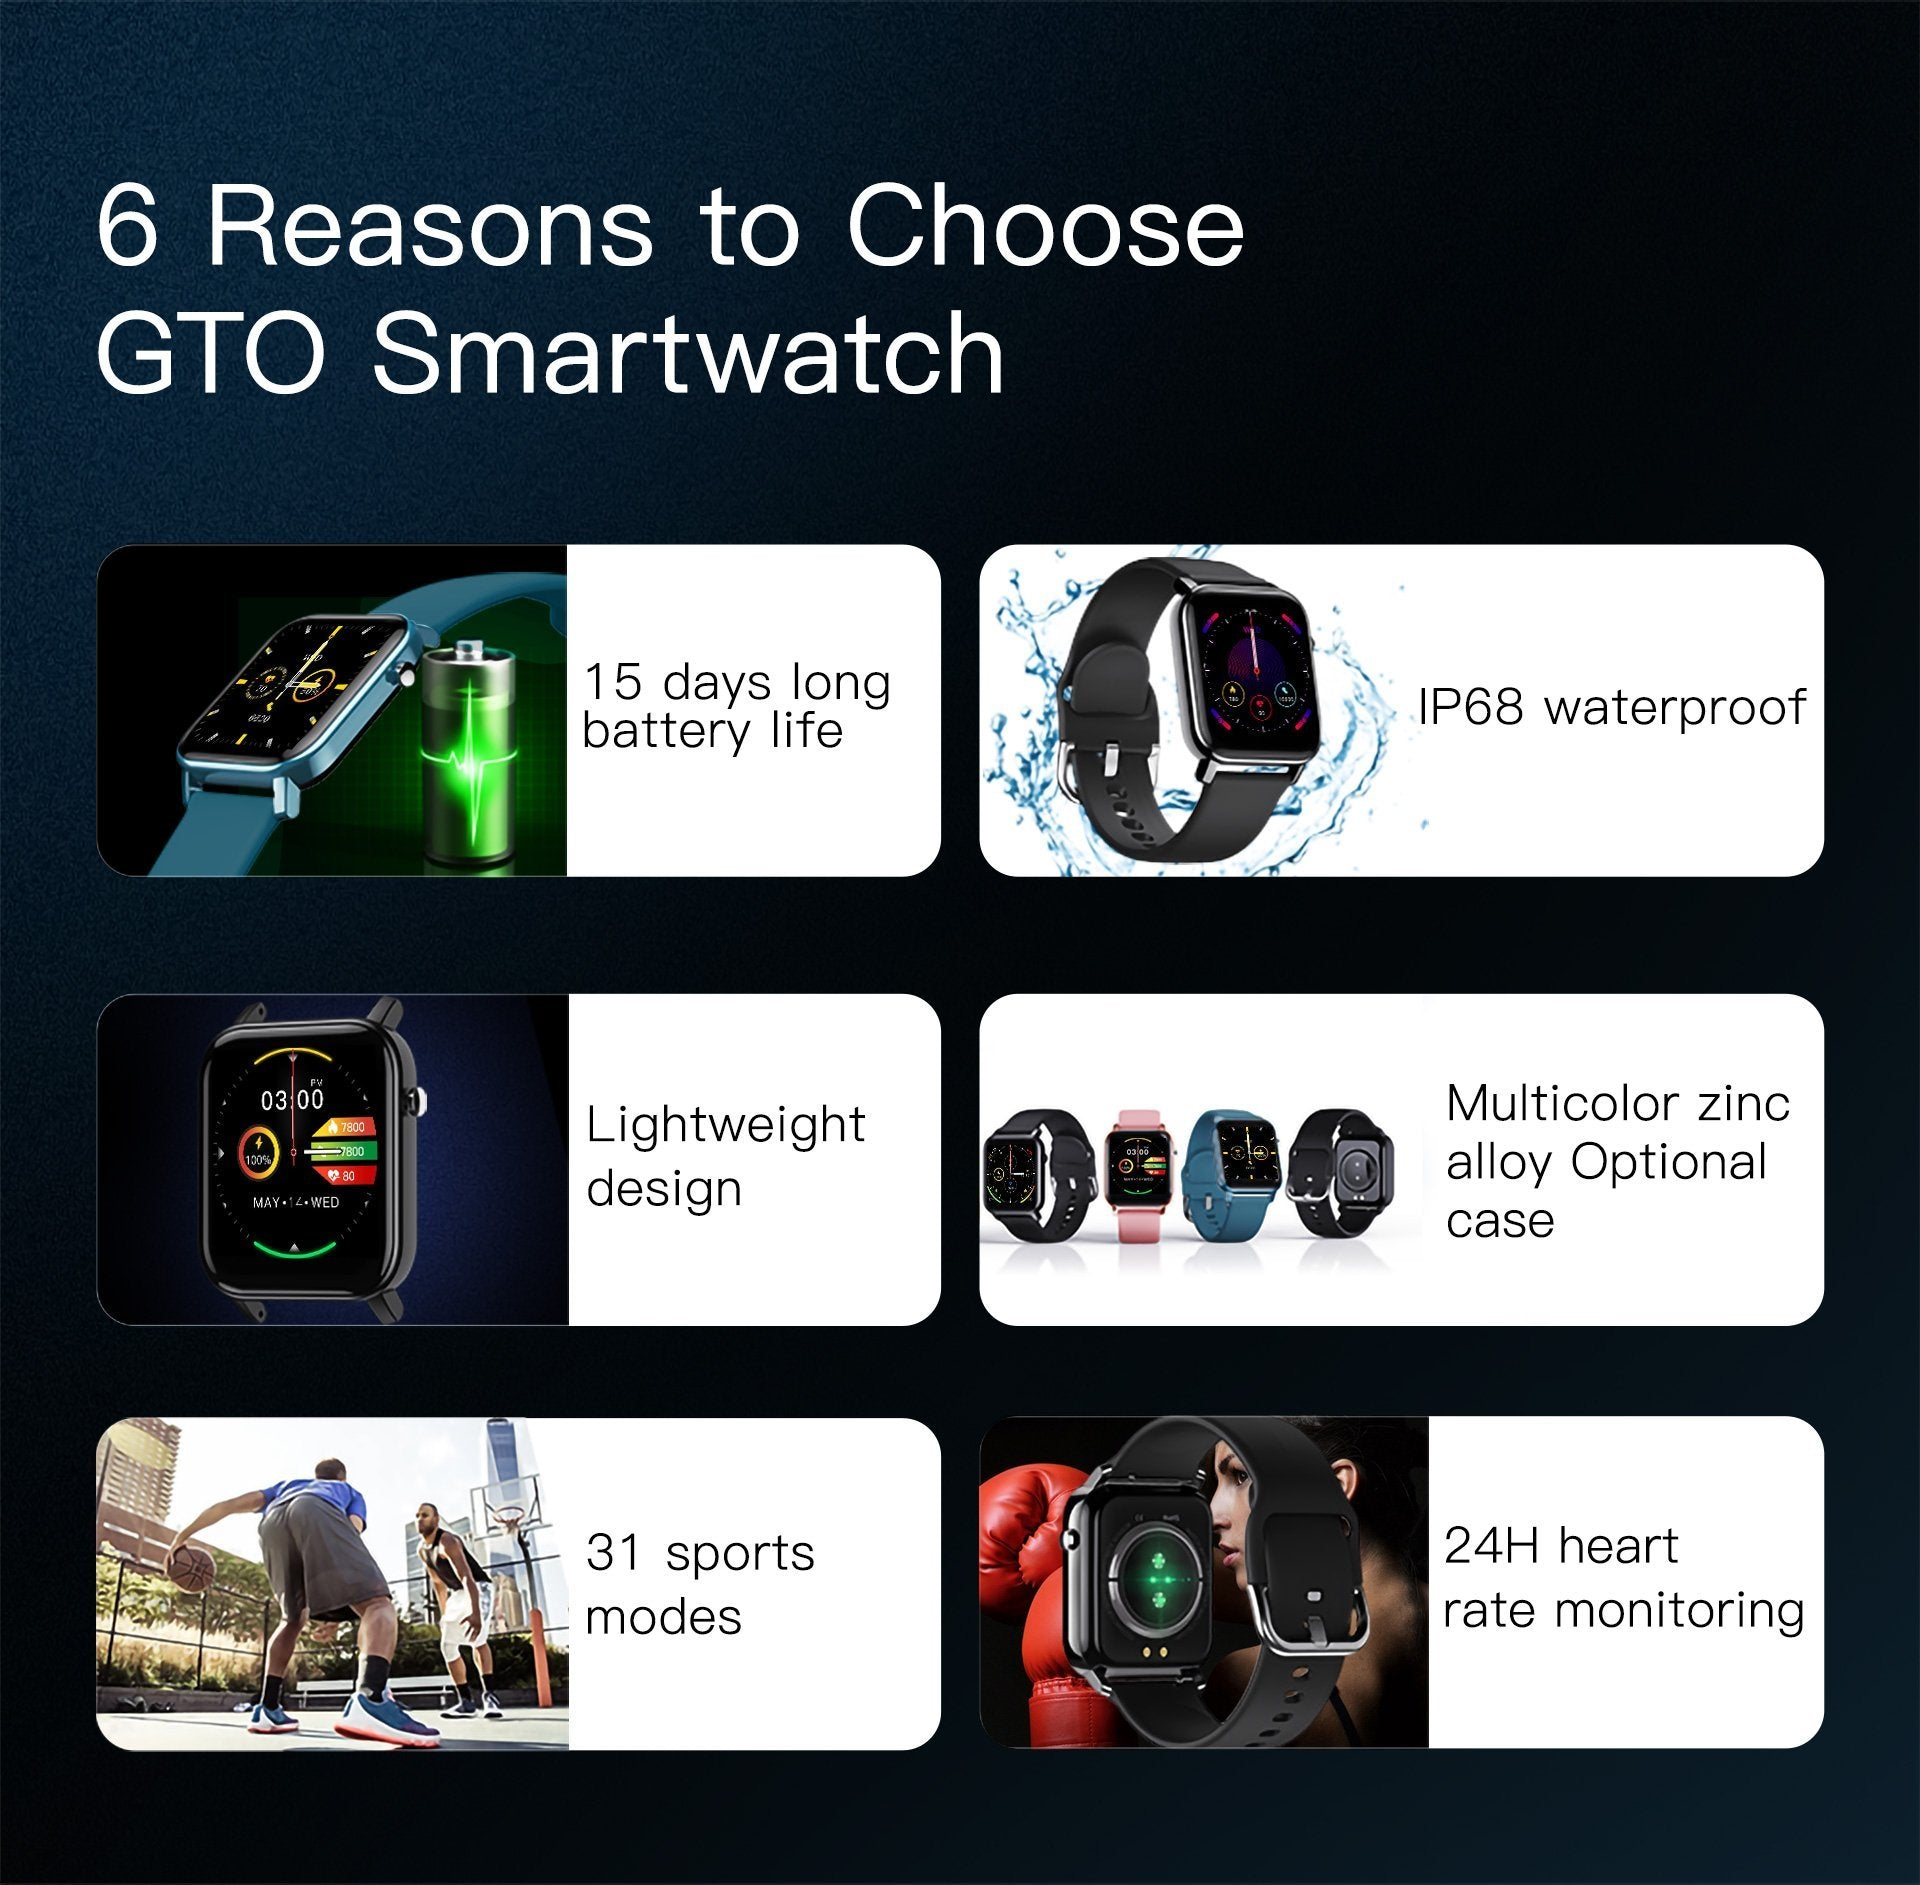 6 reasons to choose GTO Smartwatch